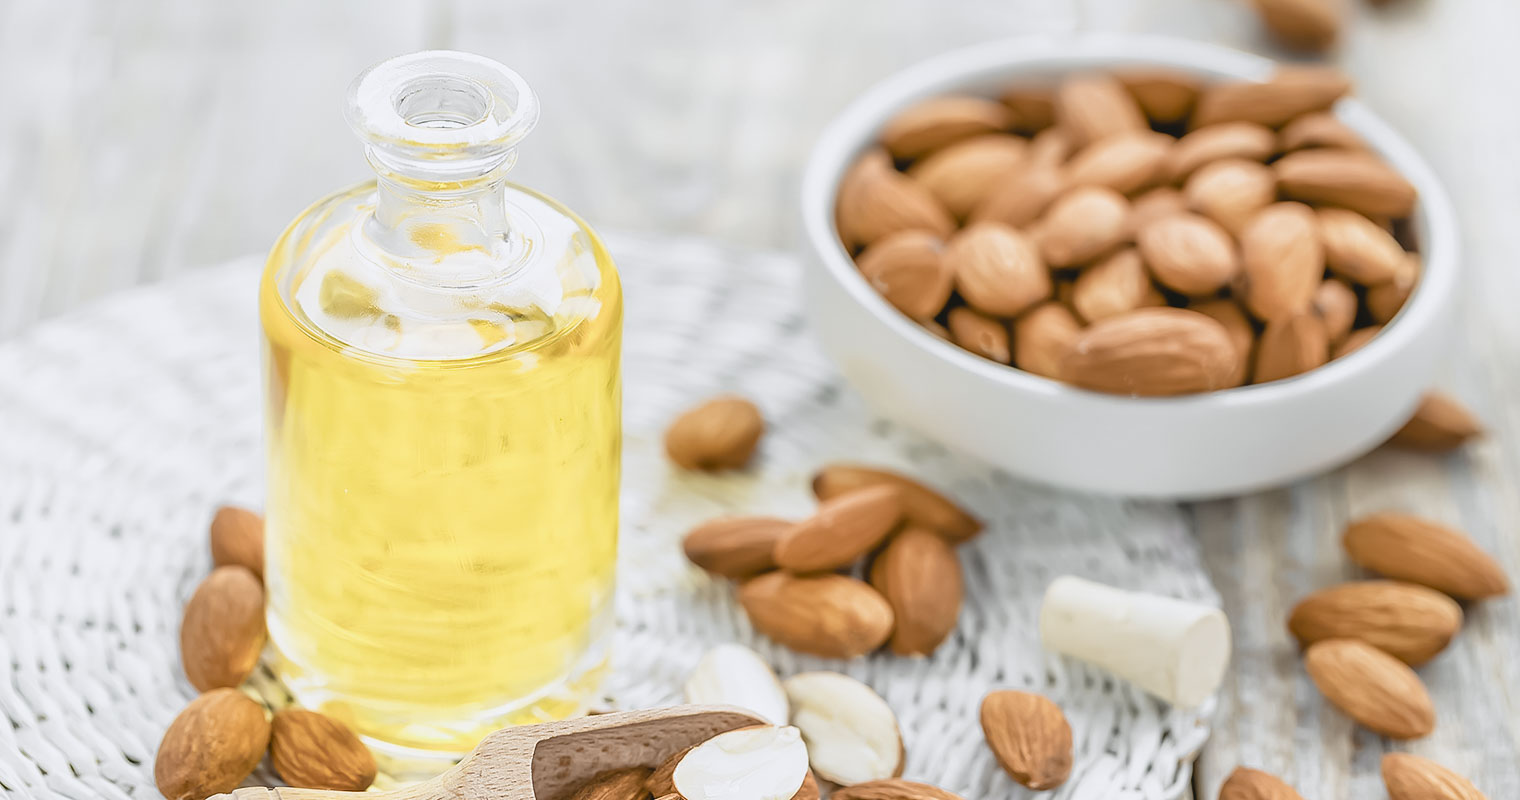 Open bottle of Almond oil and a dish with Almond seeds in the background